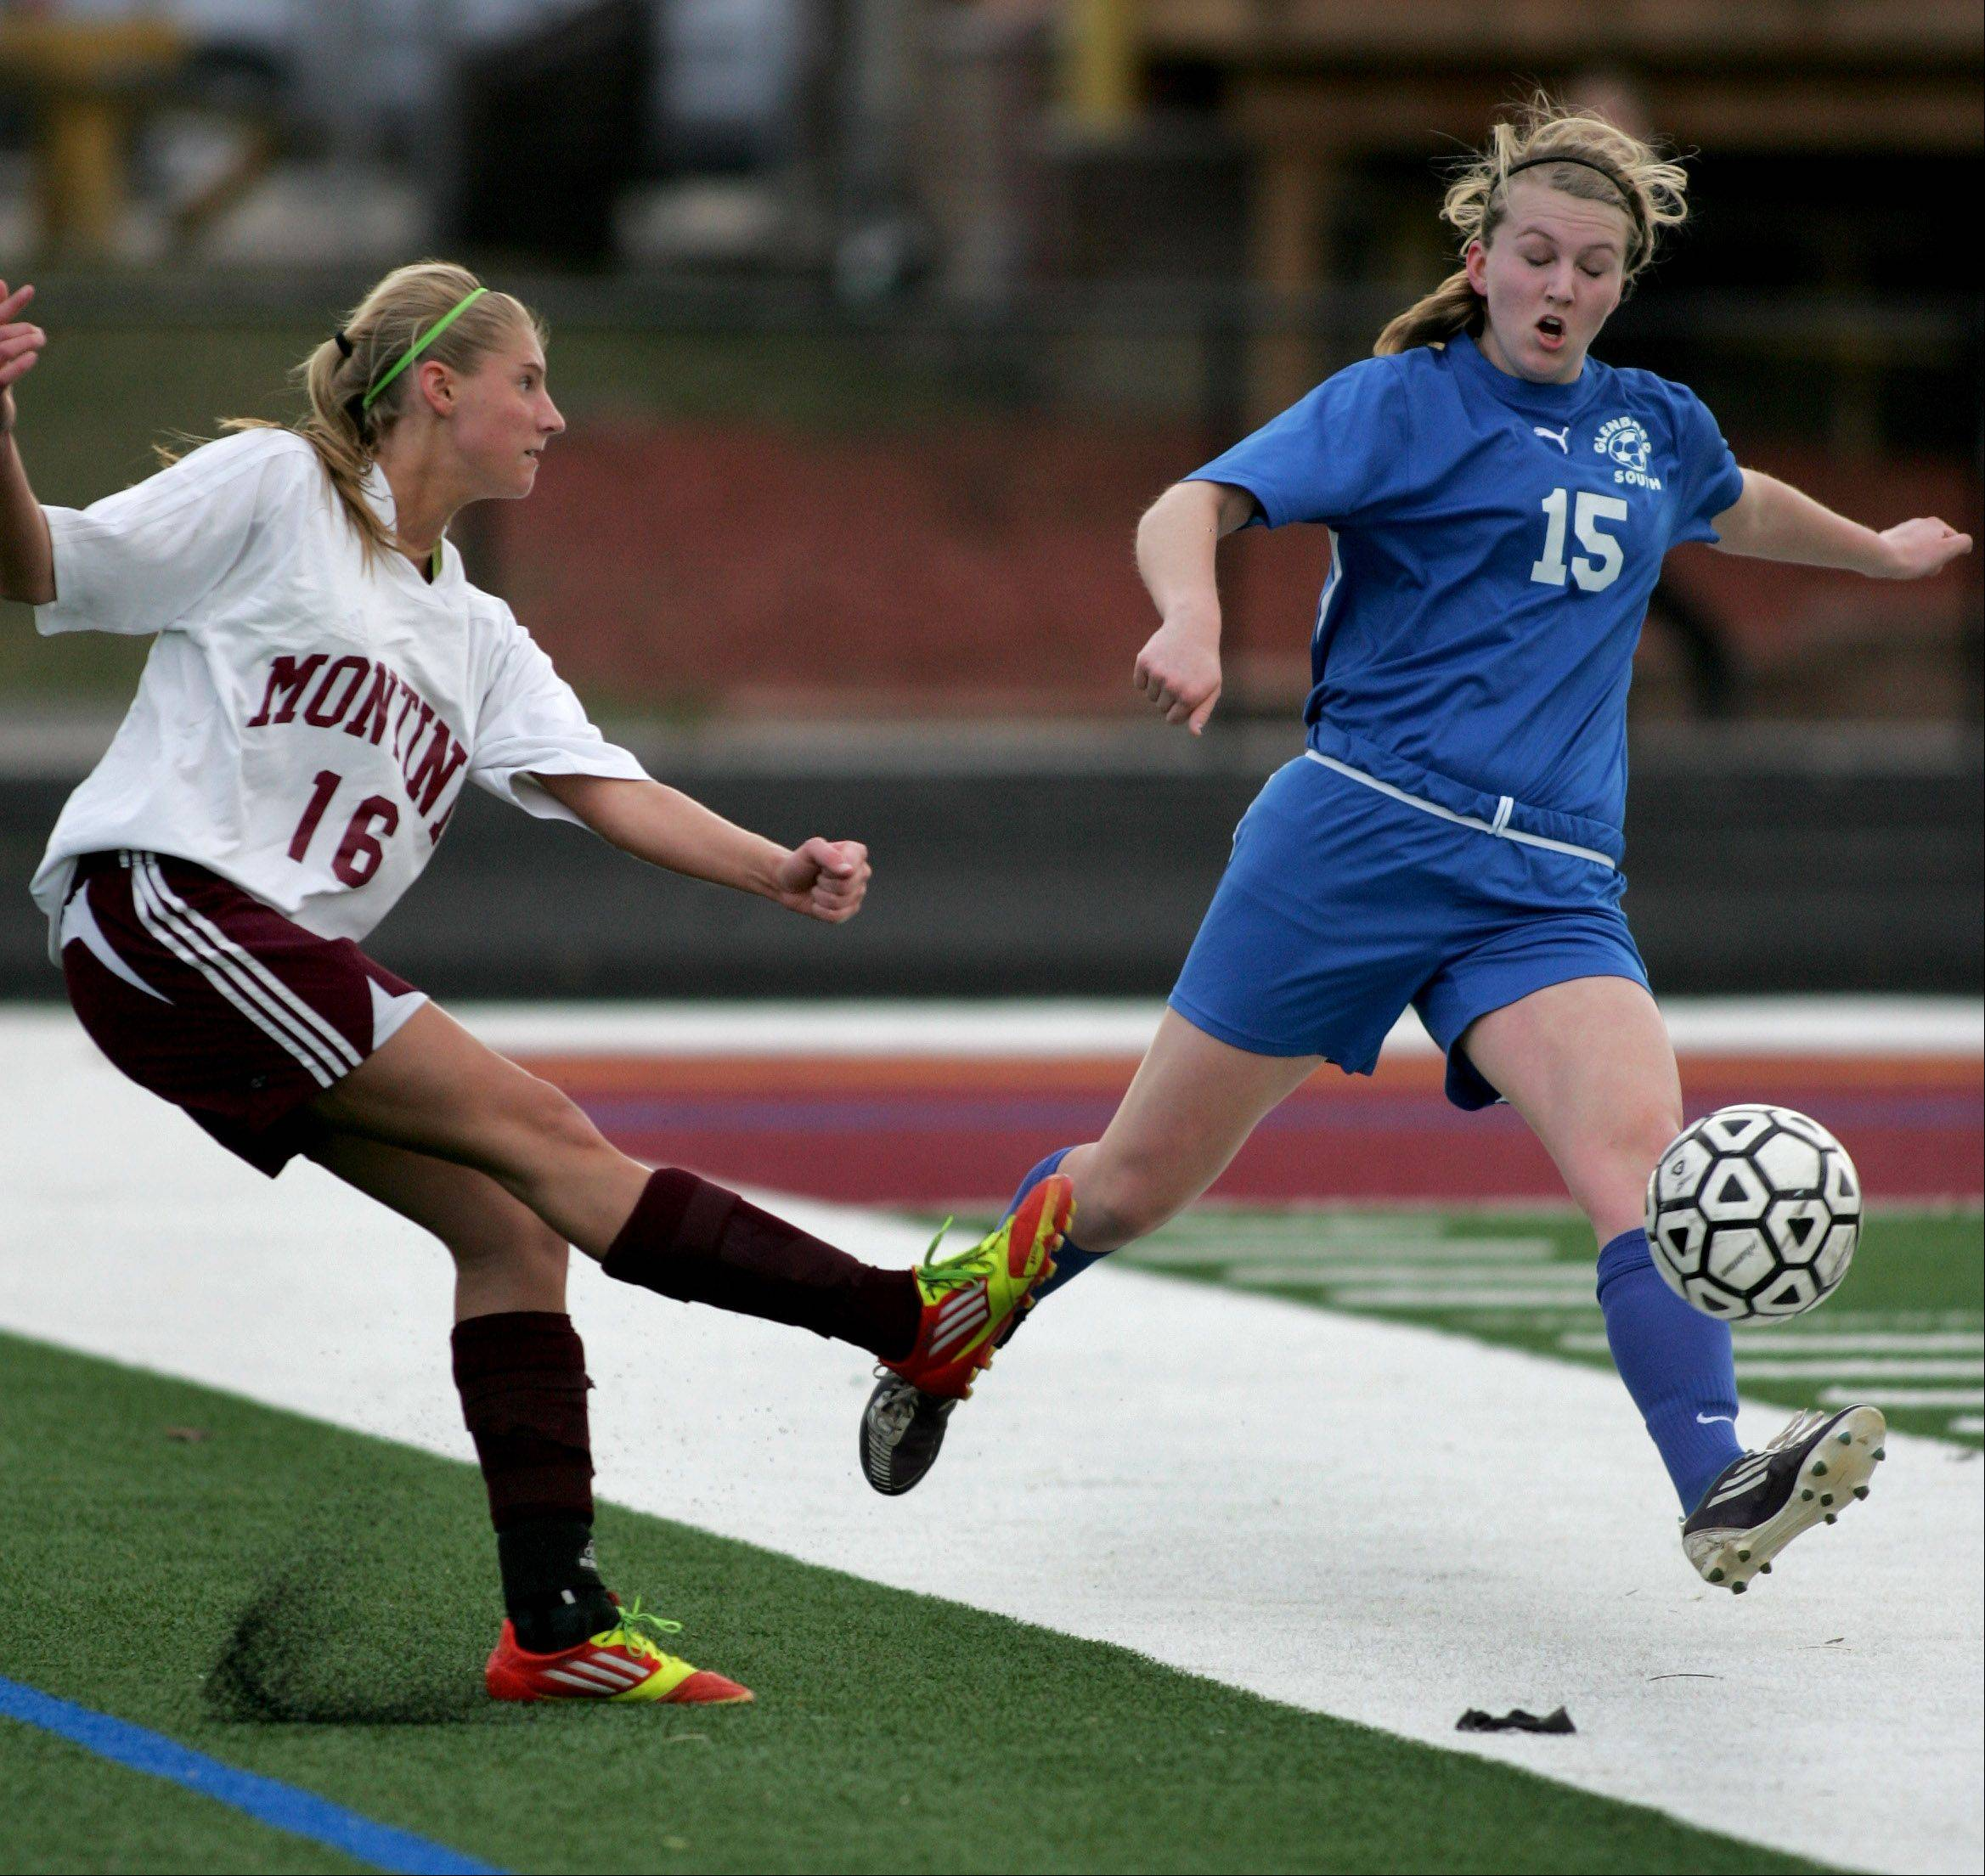 Montini's Jessie Bejna, left, kicks the ball away from Glenbard South Nicole Schutte during Monday's soccer game in Lombard.